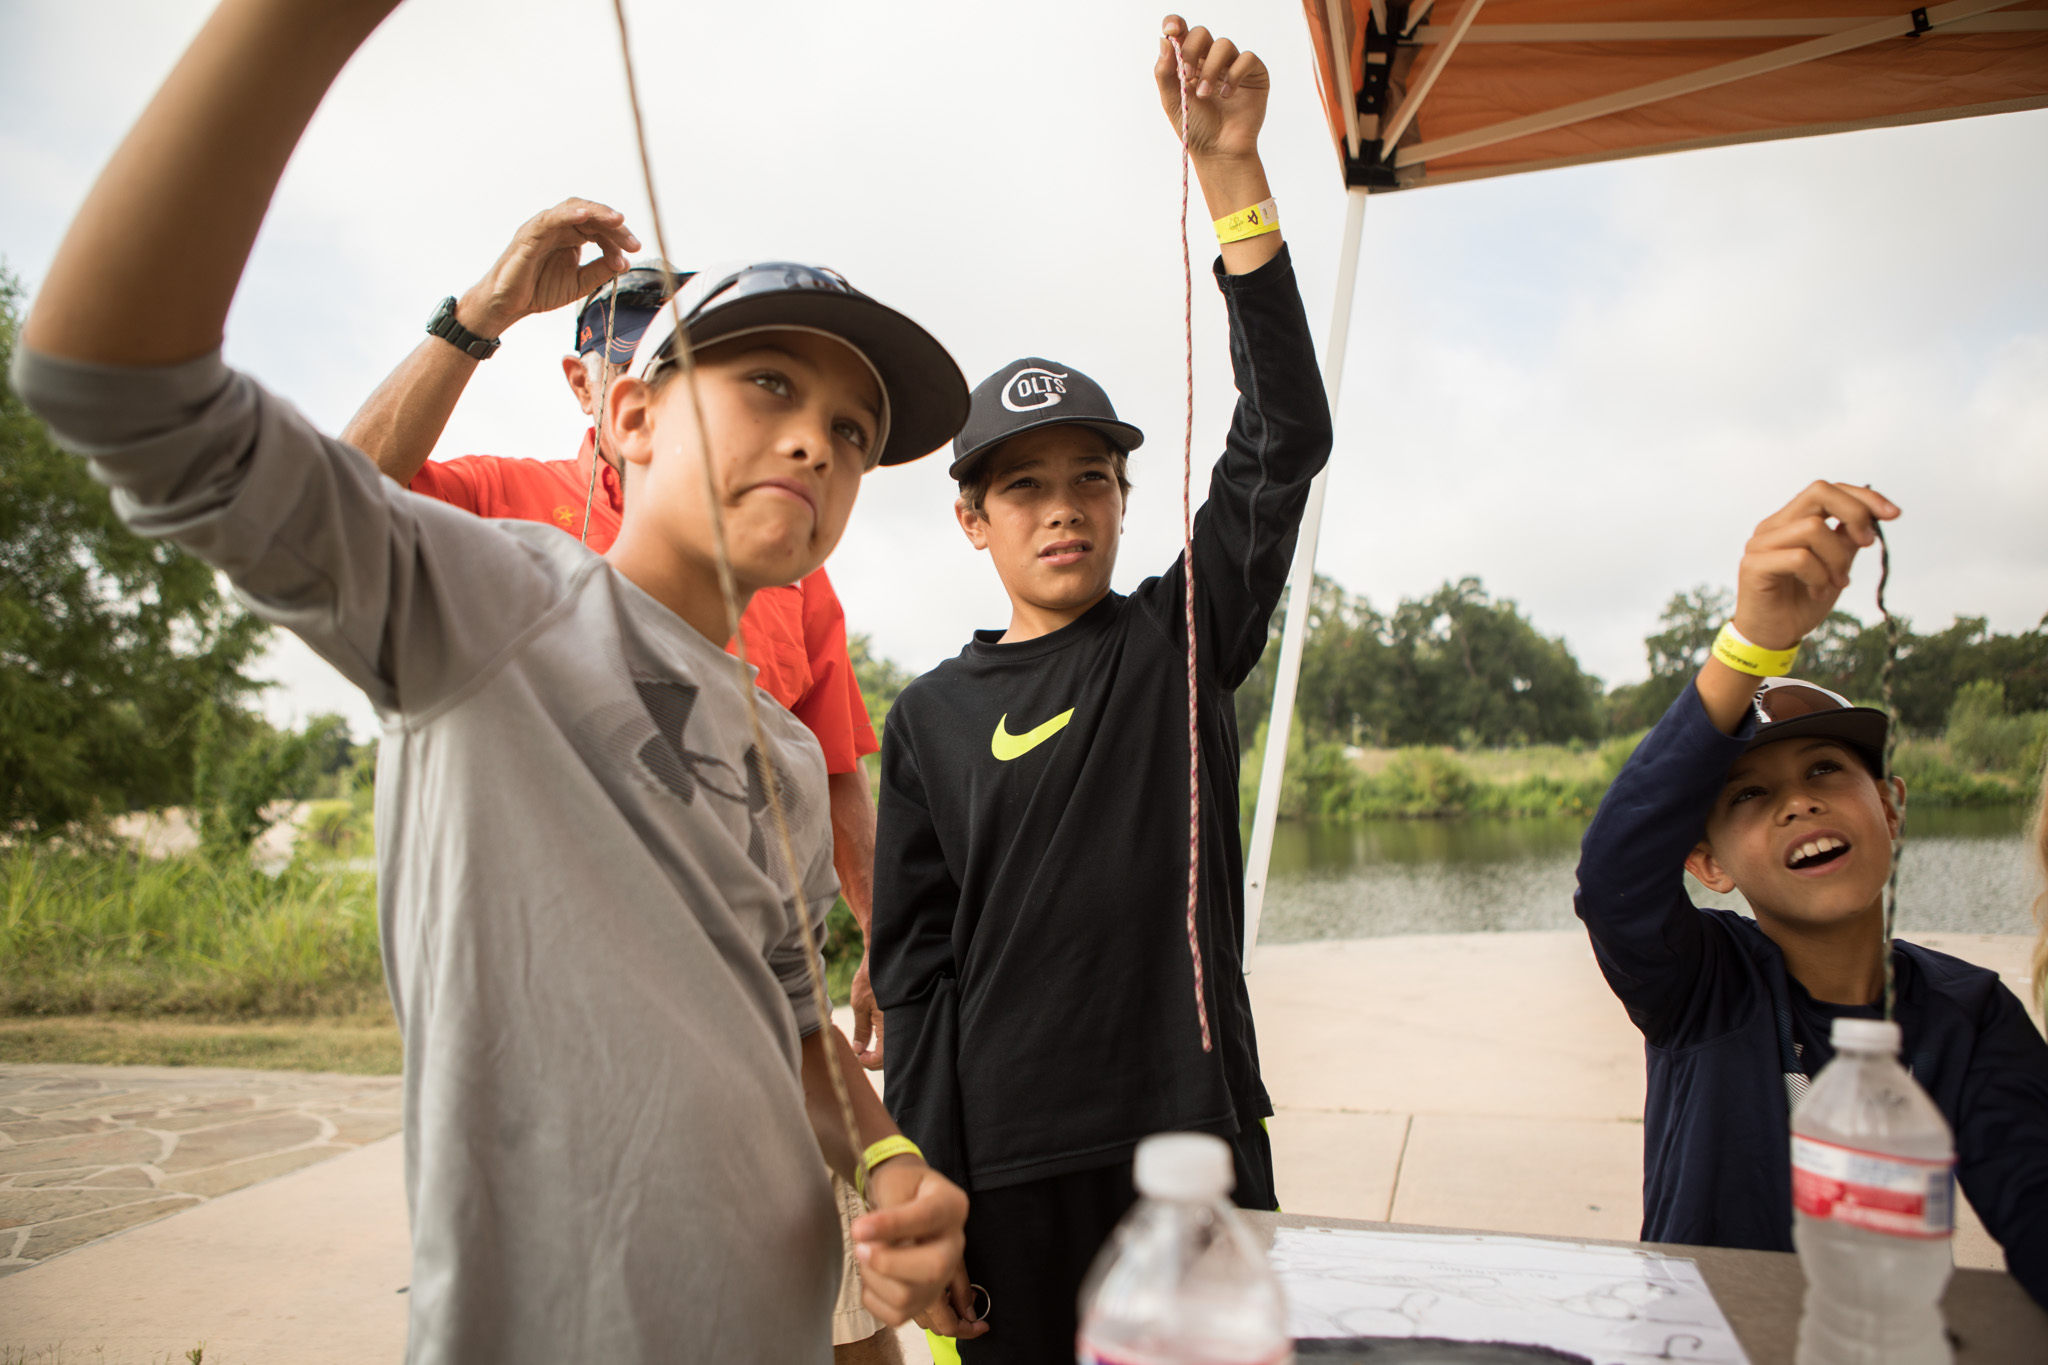 (From left) Dylan, 10, Brooks, 10, and Jake, 9, hold up fishing line during a lesson in knot tying at Family, Fishing and Friends at Acequia Park.